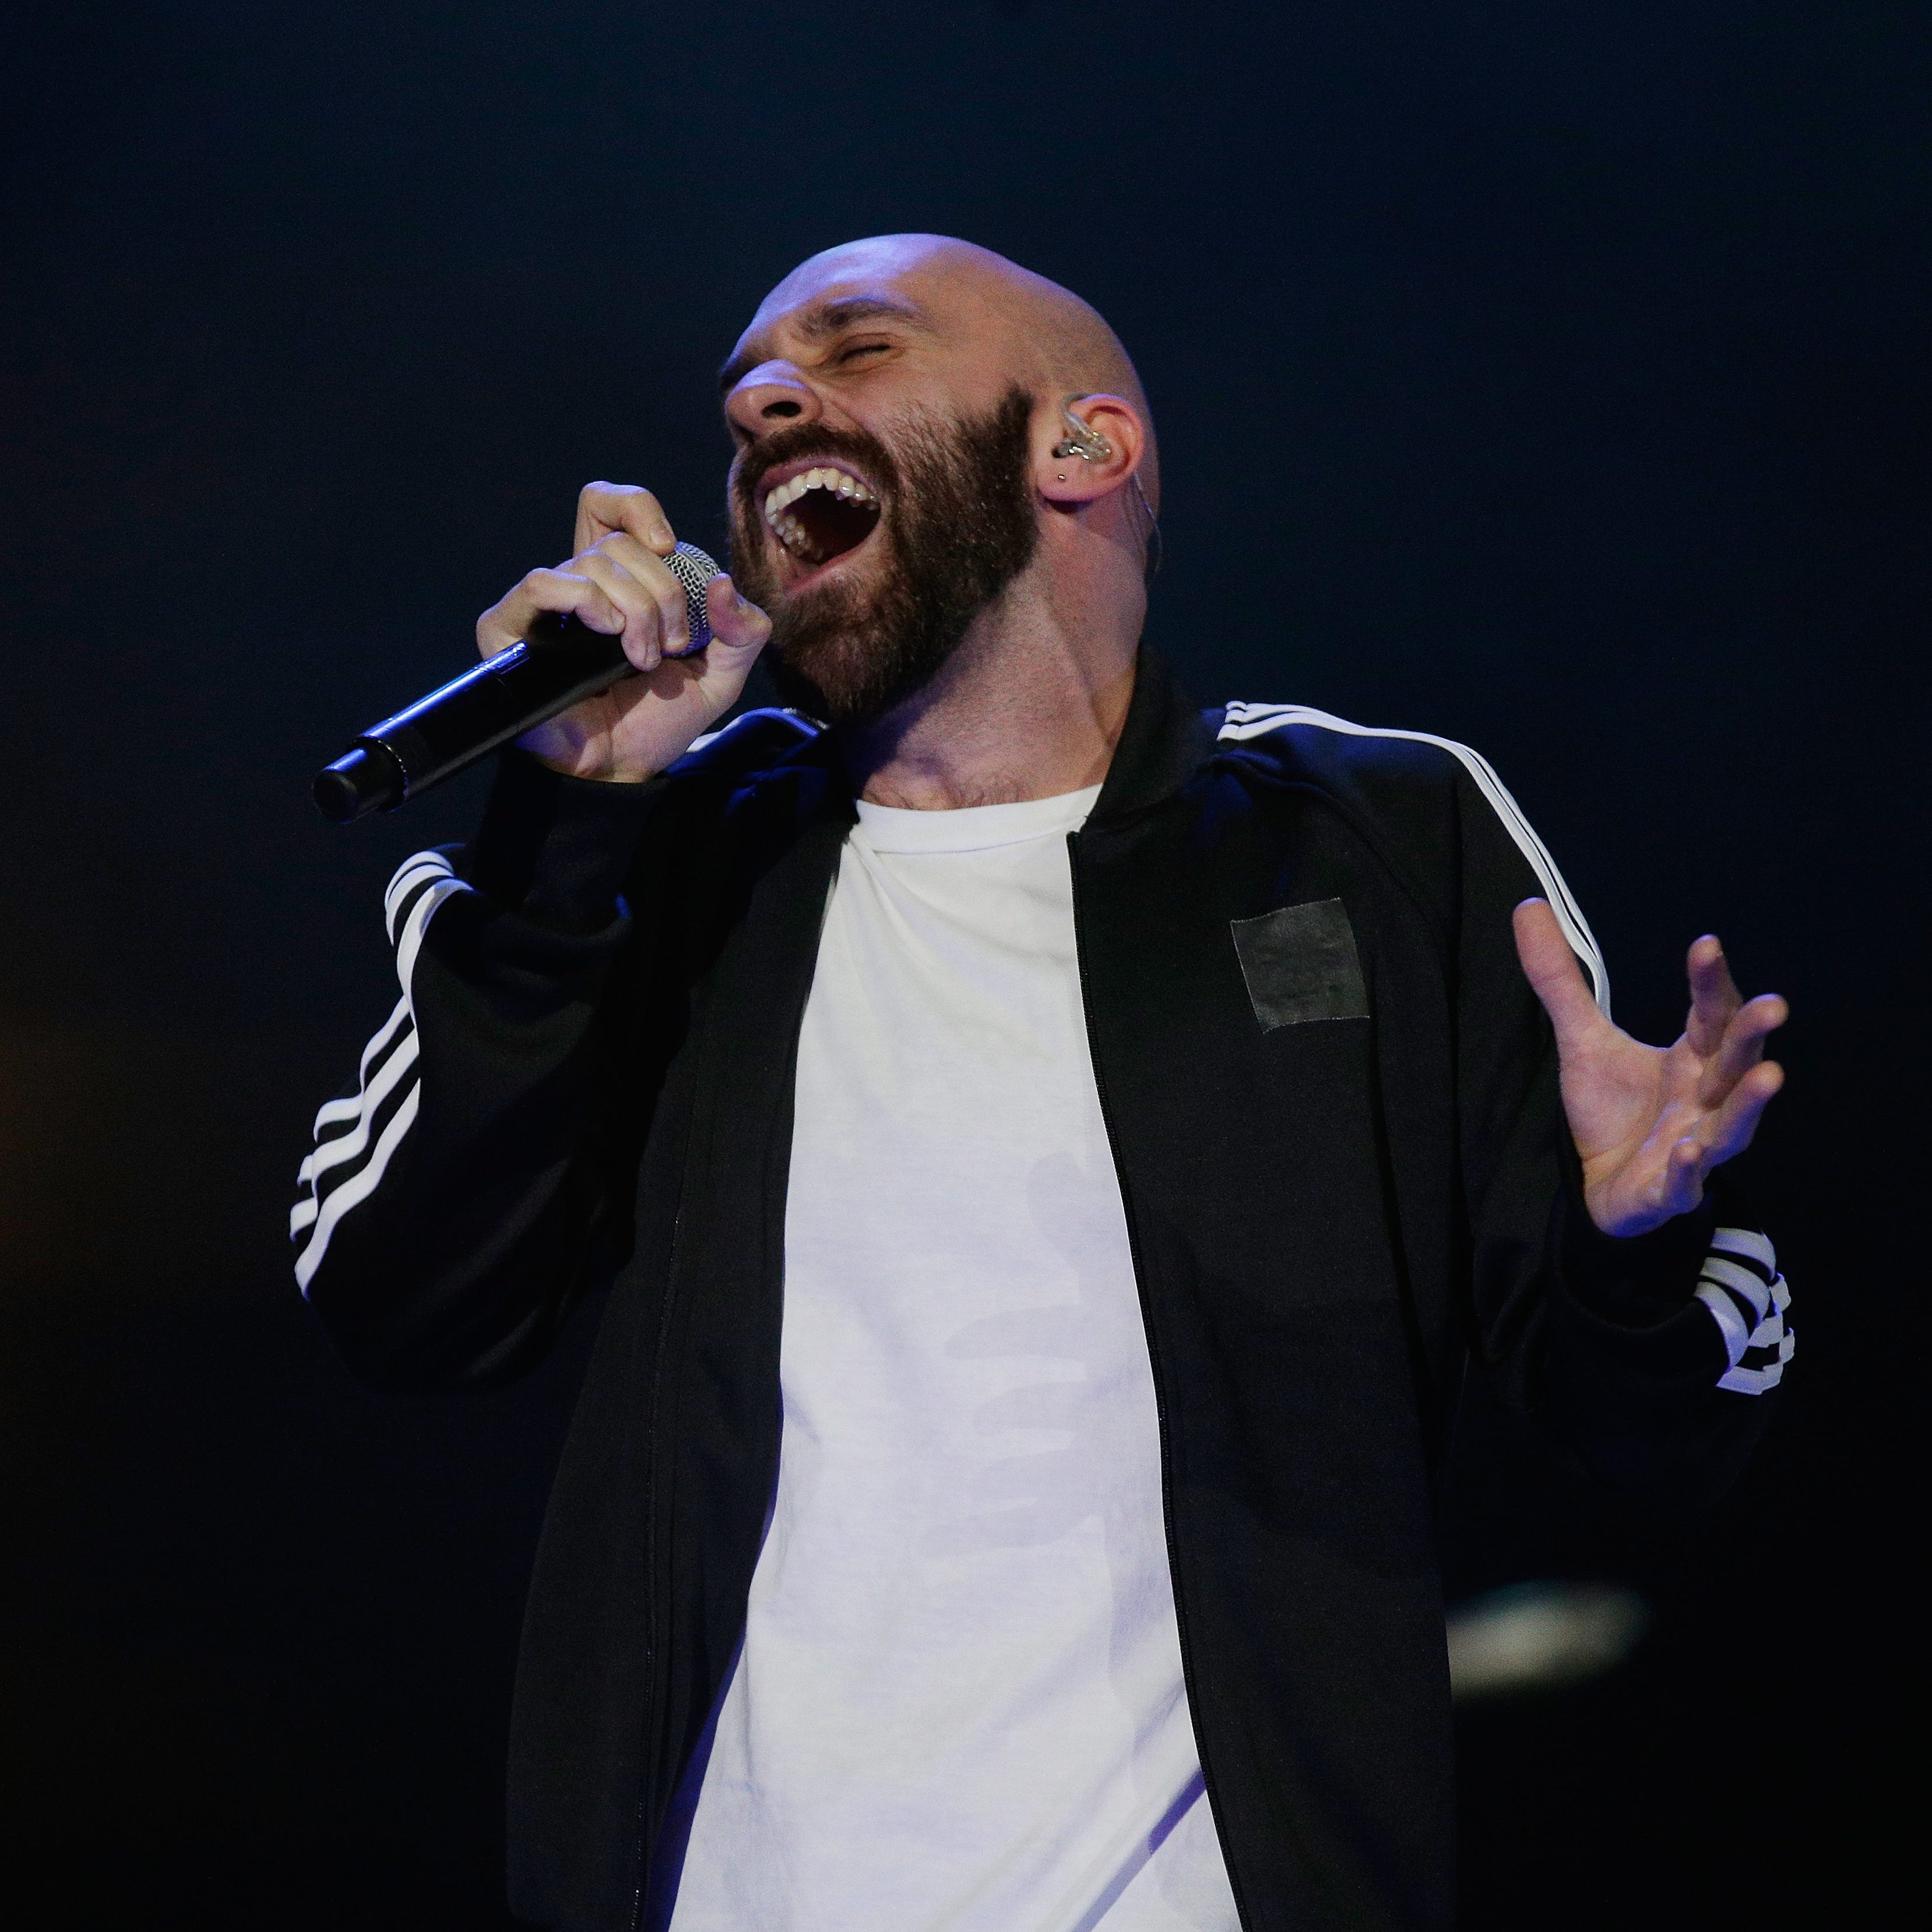 X Ambassadors set to play Outagamie County Fair